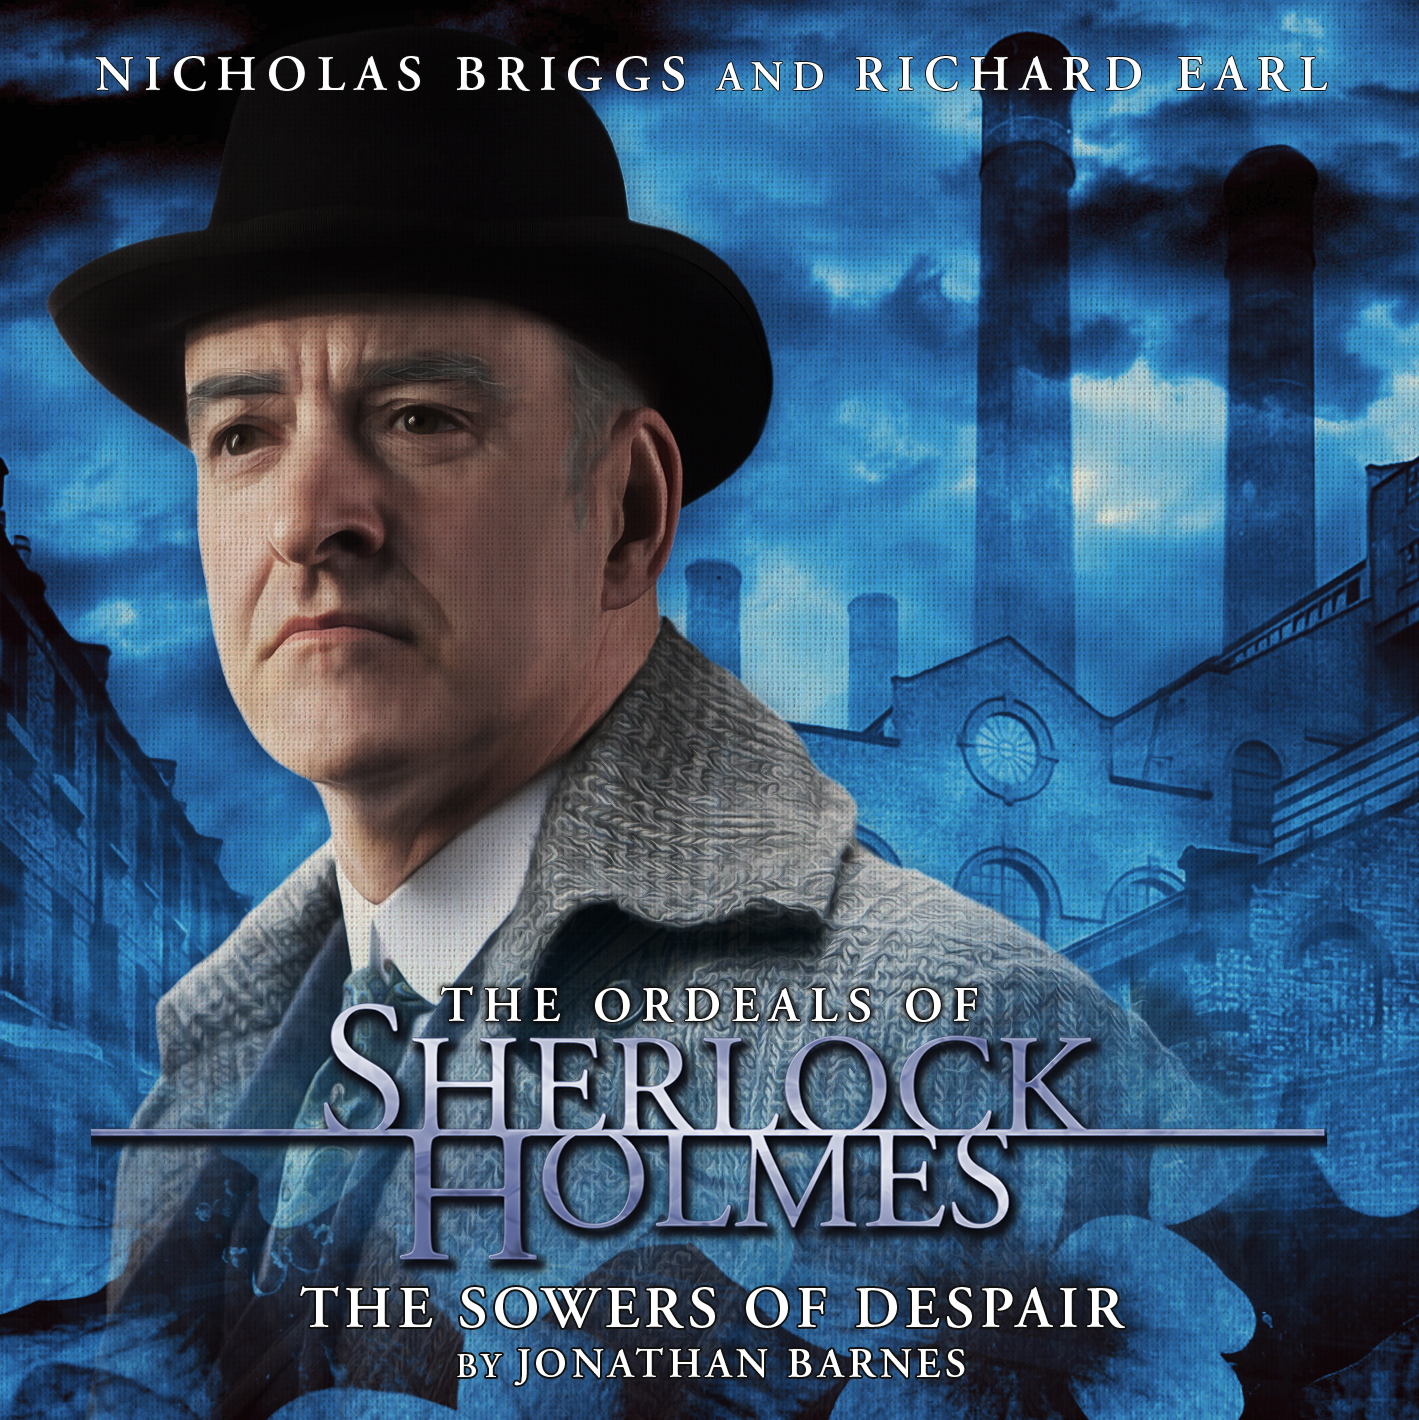 Review: Sherlock Holmes: The Ordeals of Sherlock Holmes (Big Finish